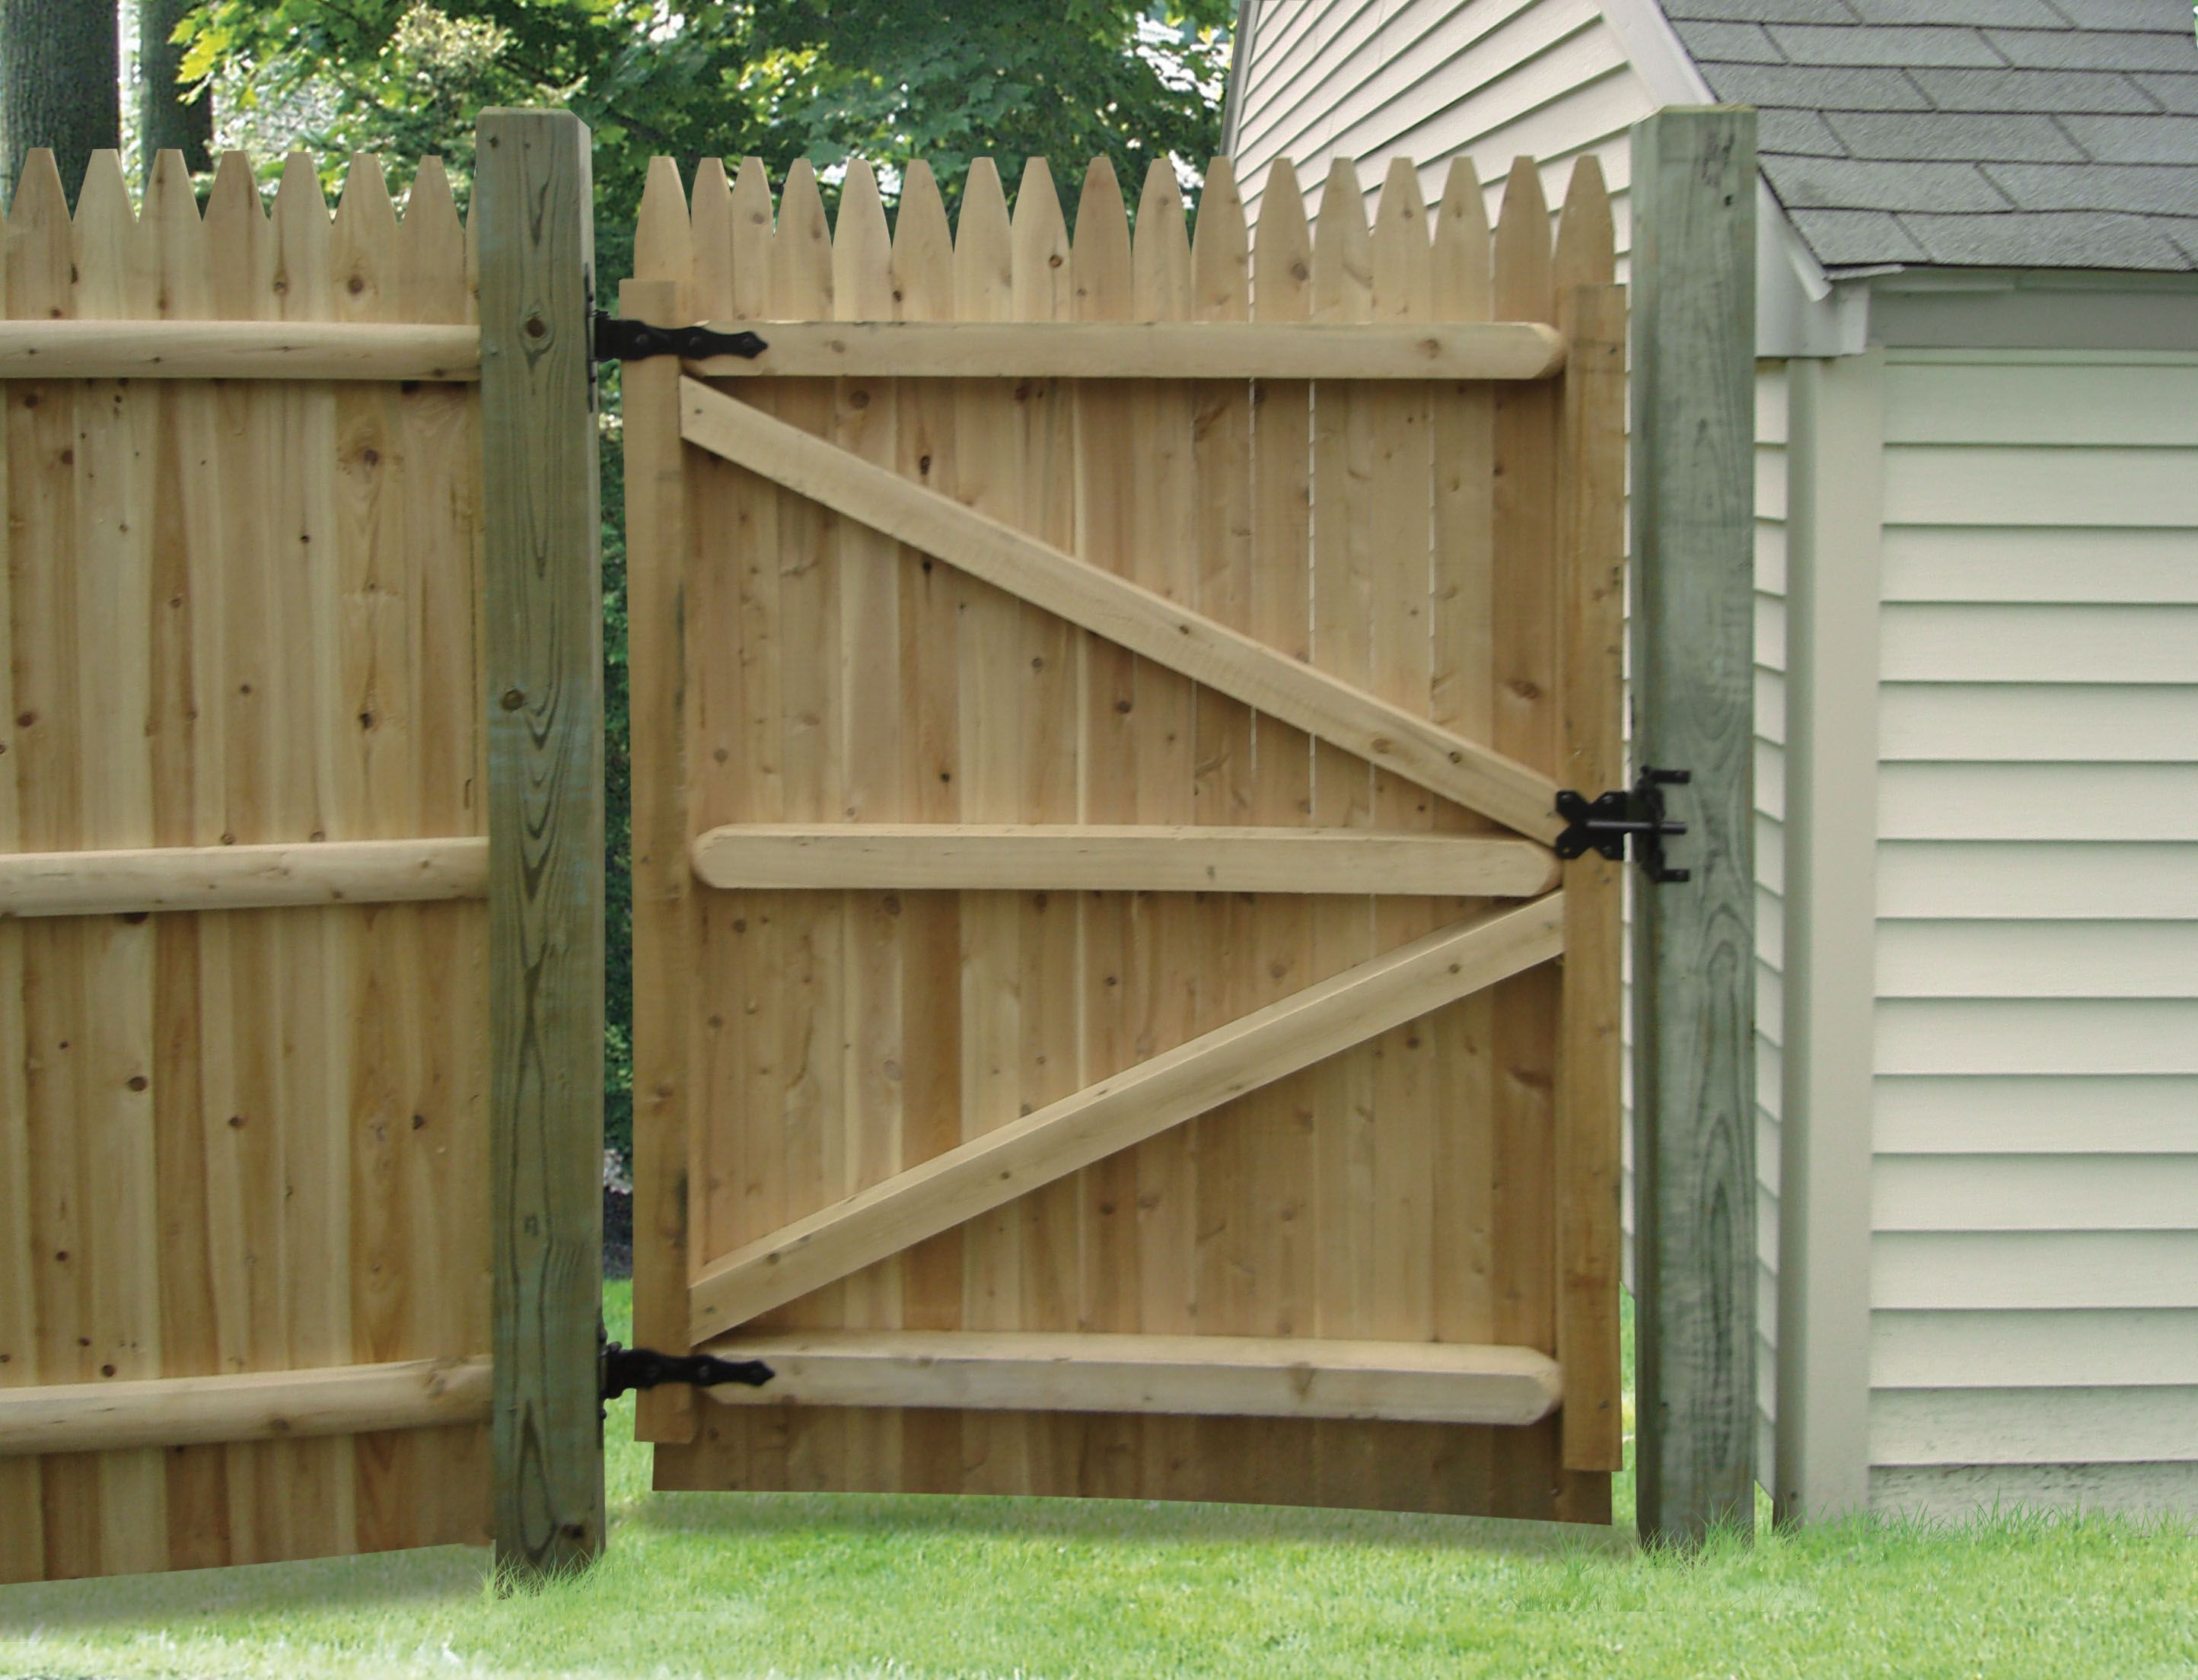 Wooden fence gates designs wood fence doors interior Wood garden fence designs